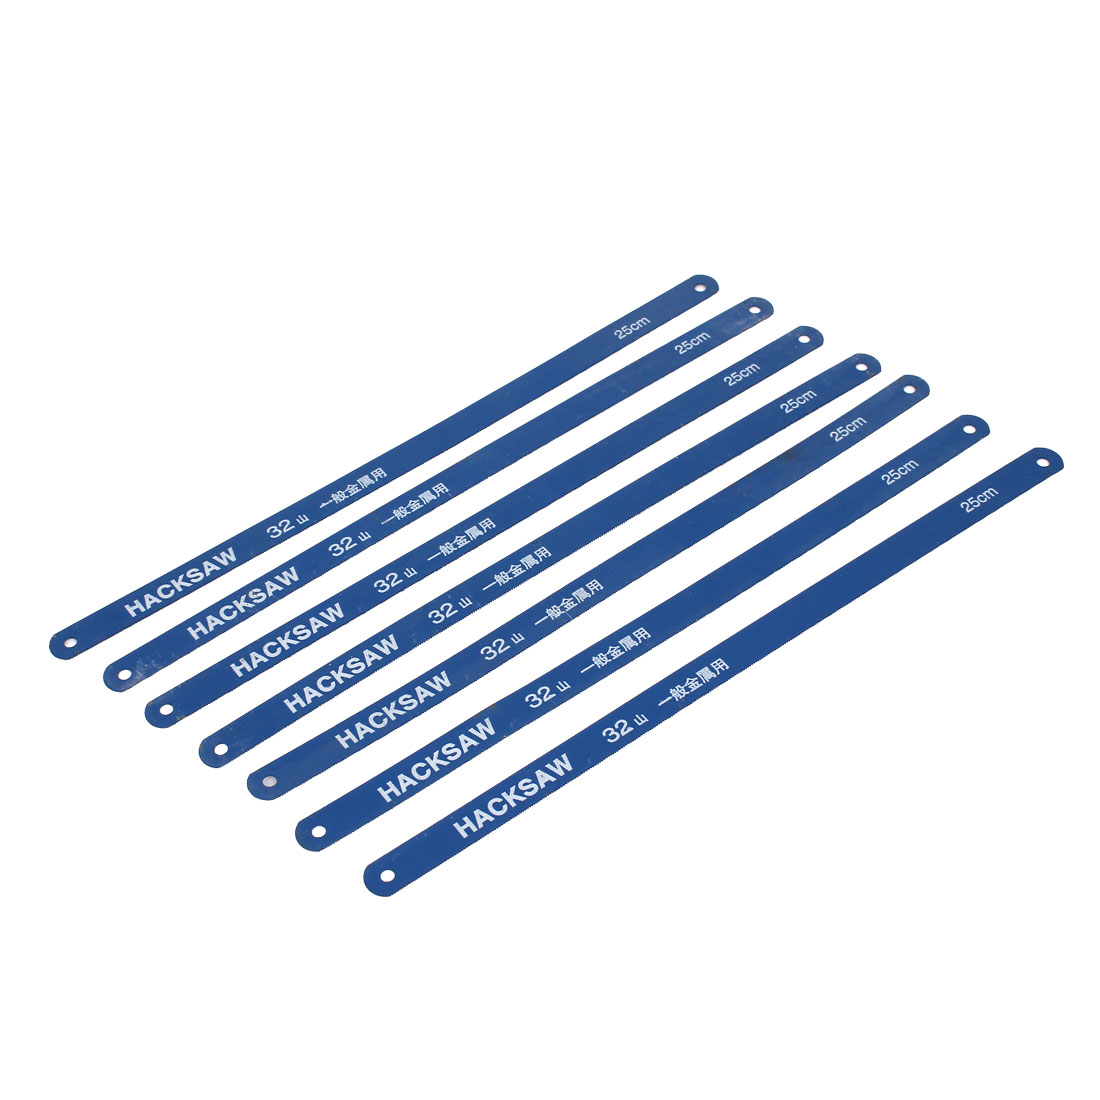 6 Pcs 250mm Working Length Carbon Steel Power Hacksaw Blades Blue 12mm x 0.6mm